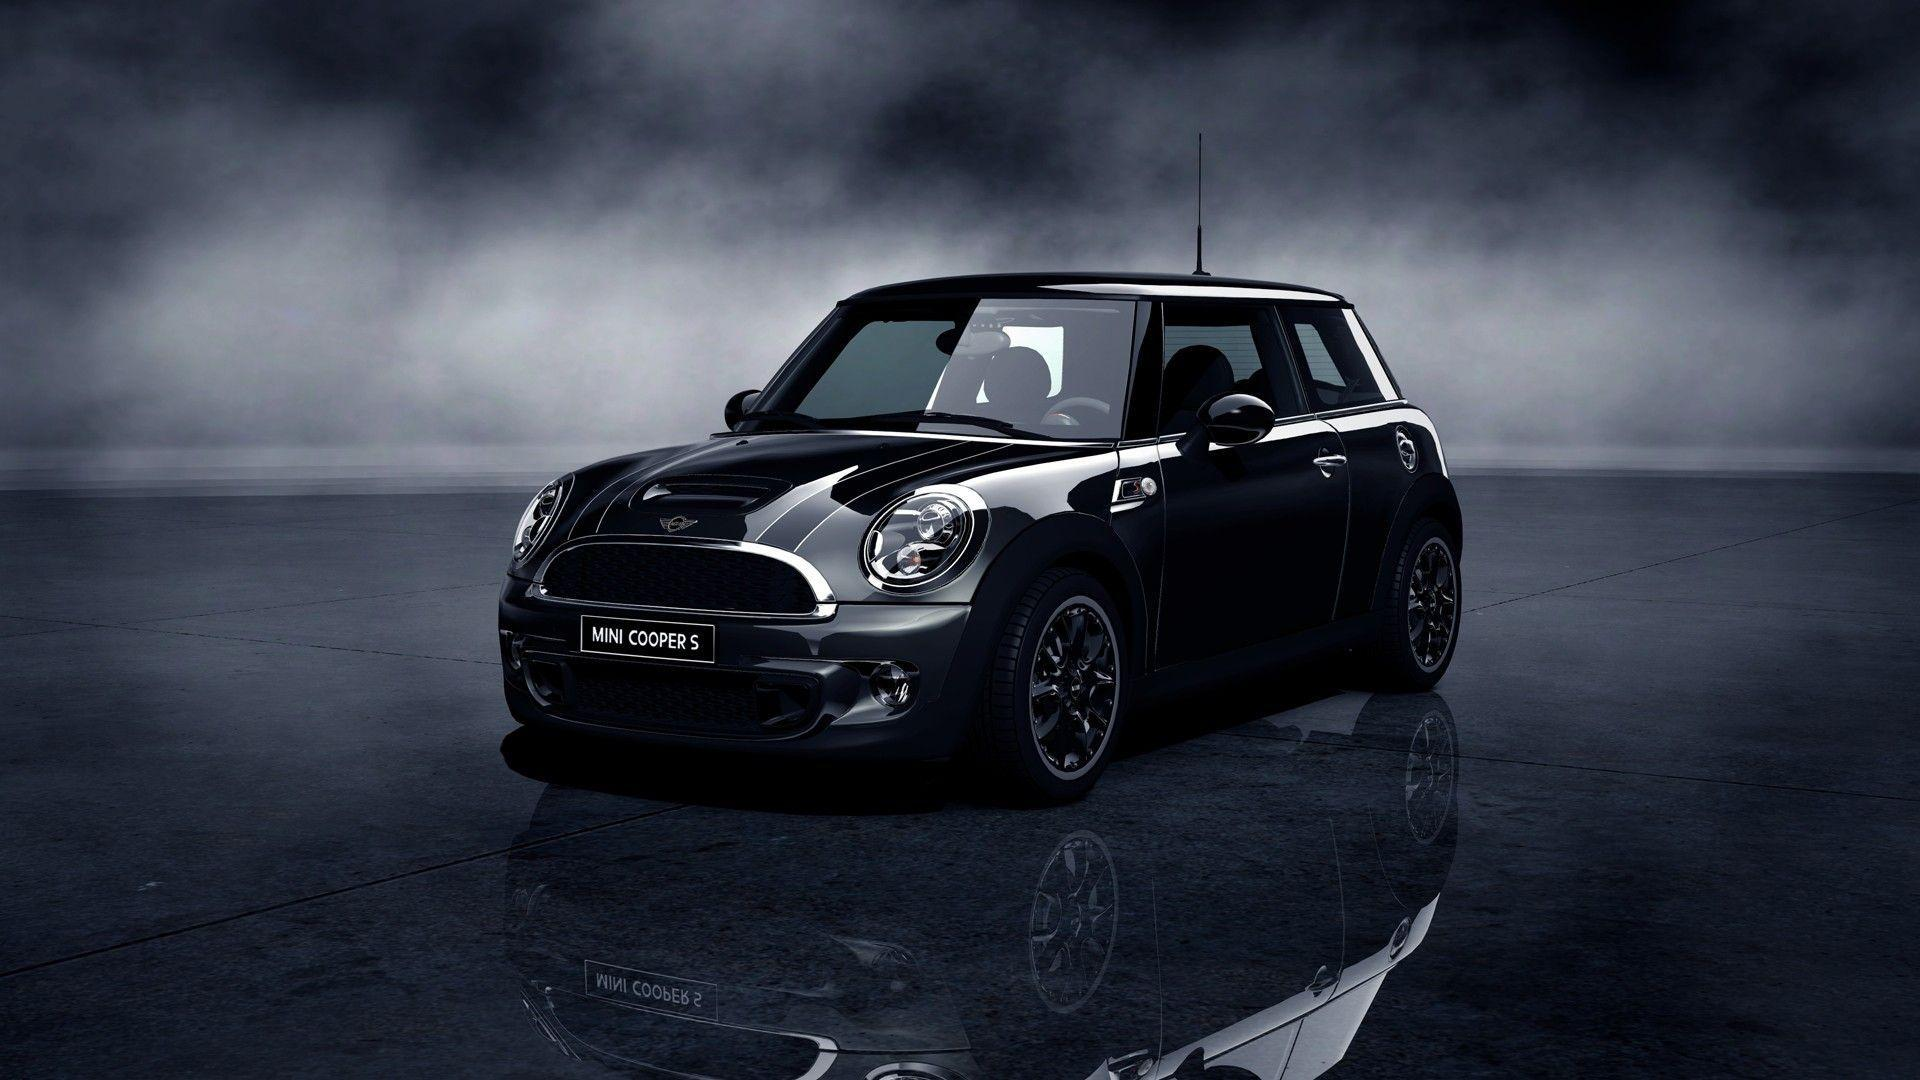 Mini Cooper Wallpapers HD 1920x1080